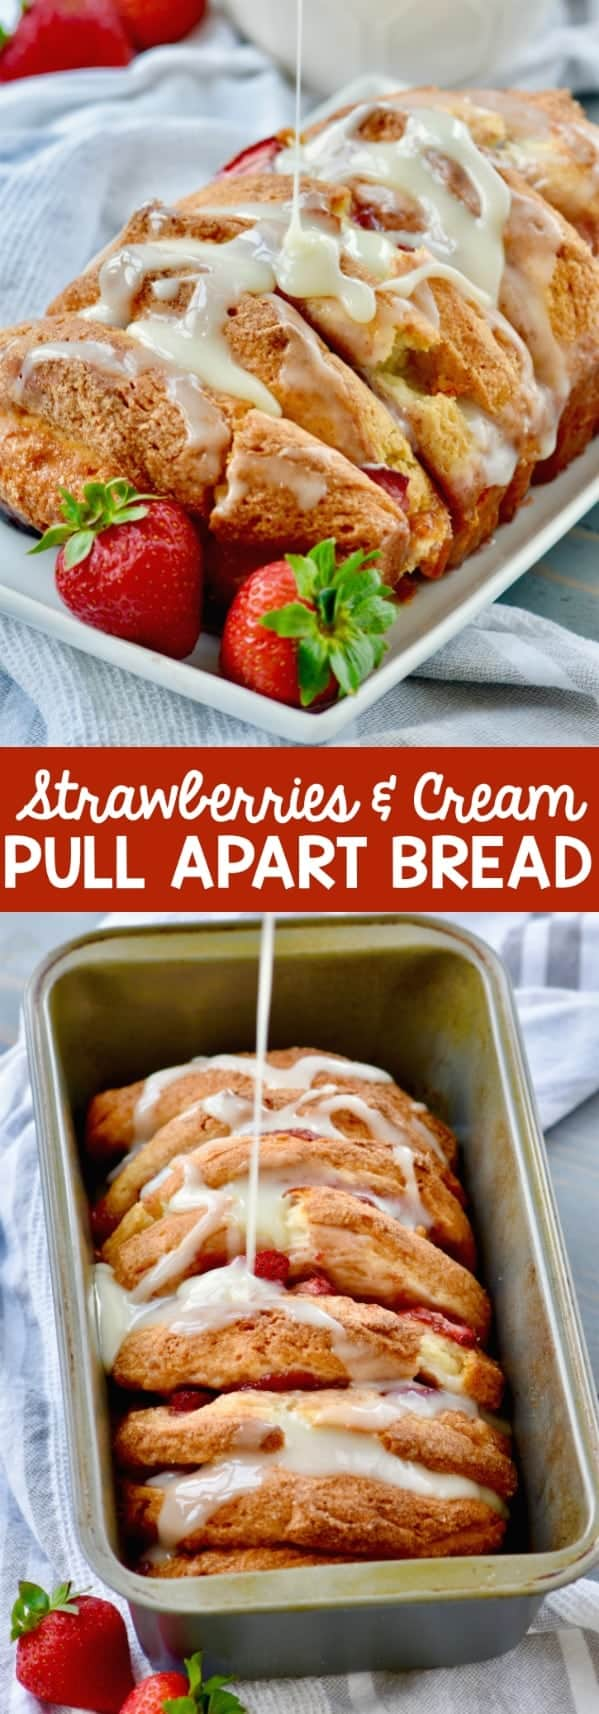 On a white plate, the Strawberries and Cream Pull Apart Bread has a beautiful golden brown crust, and some white cream is being drizzled on top of it.